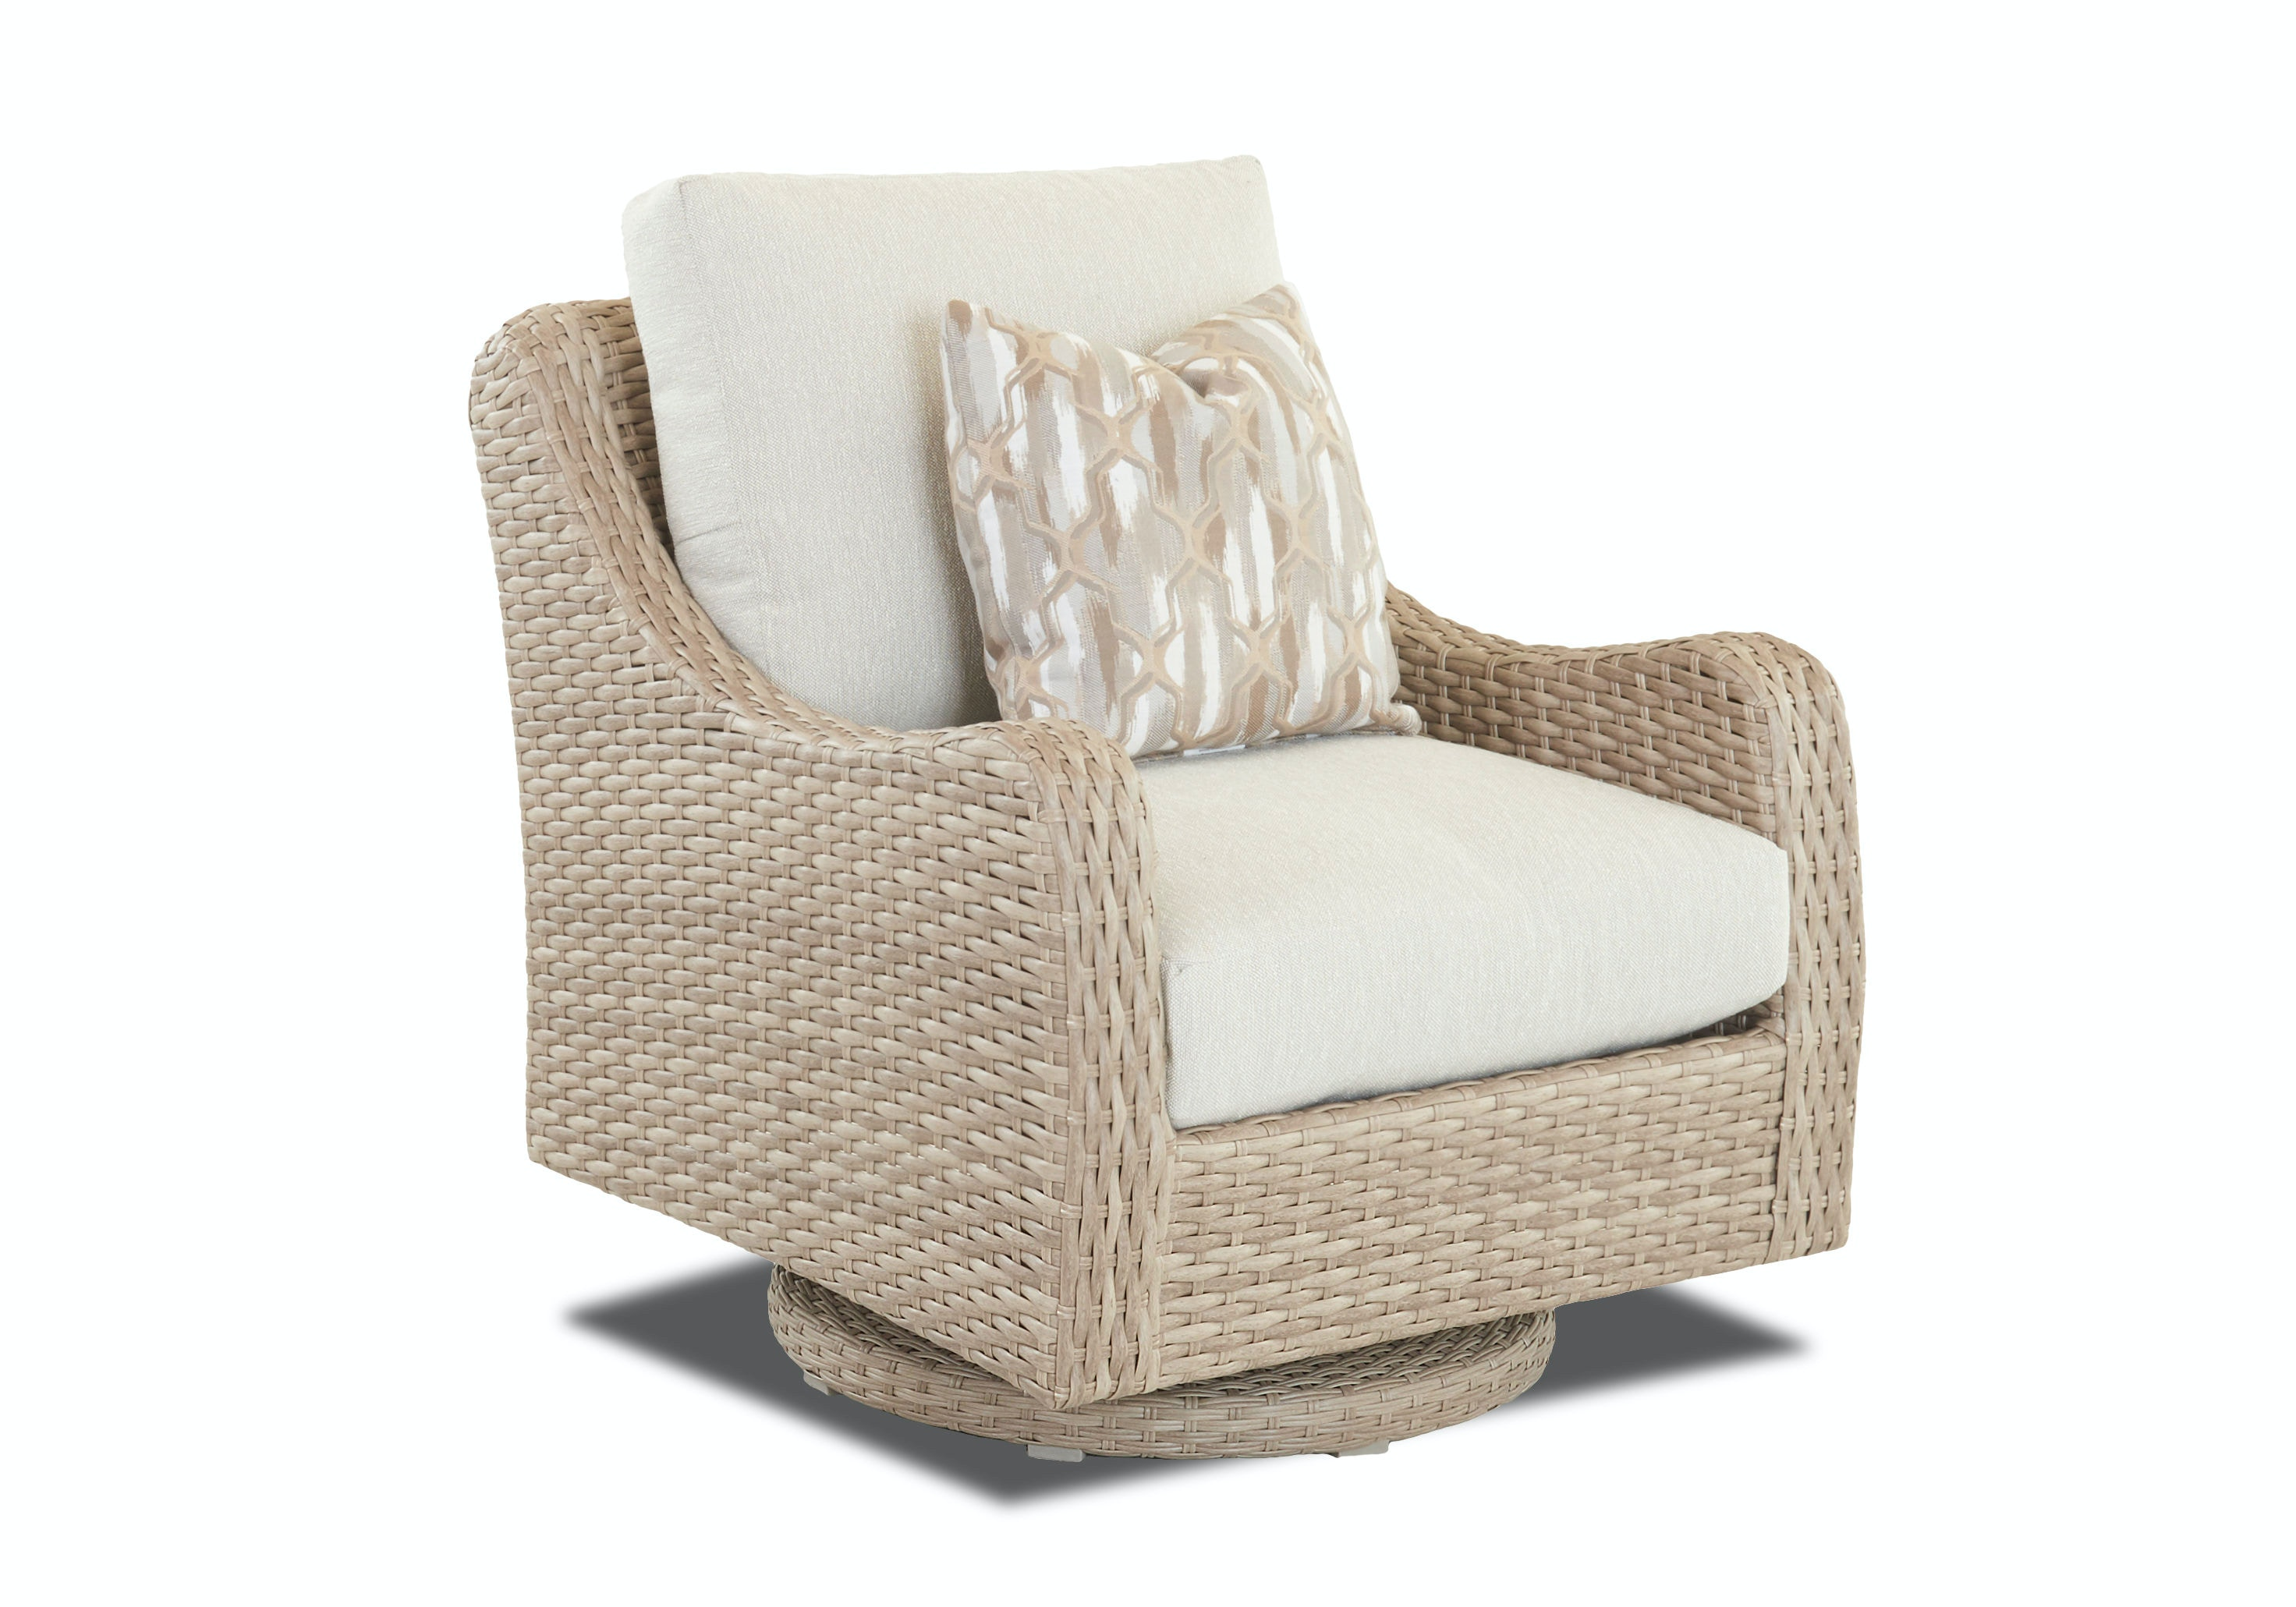 2014 at 768 215 768 in elegant collection of cushioned rocking chairs - Klaussner Outdoor Mesa Swivel Rocker Chair W7501 Srkc